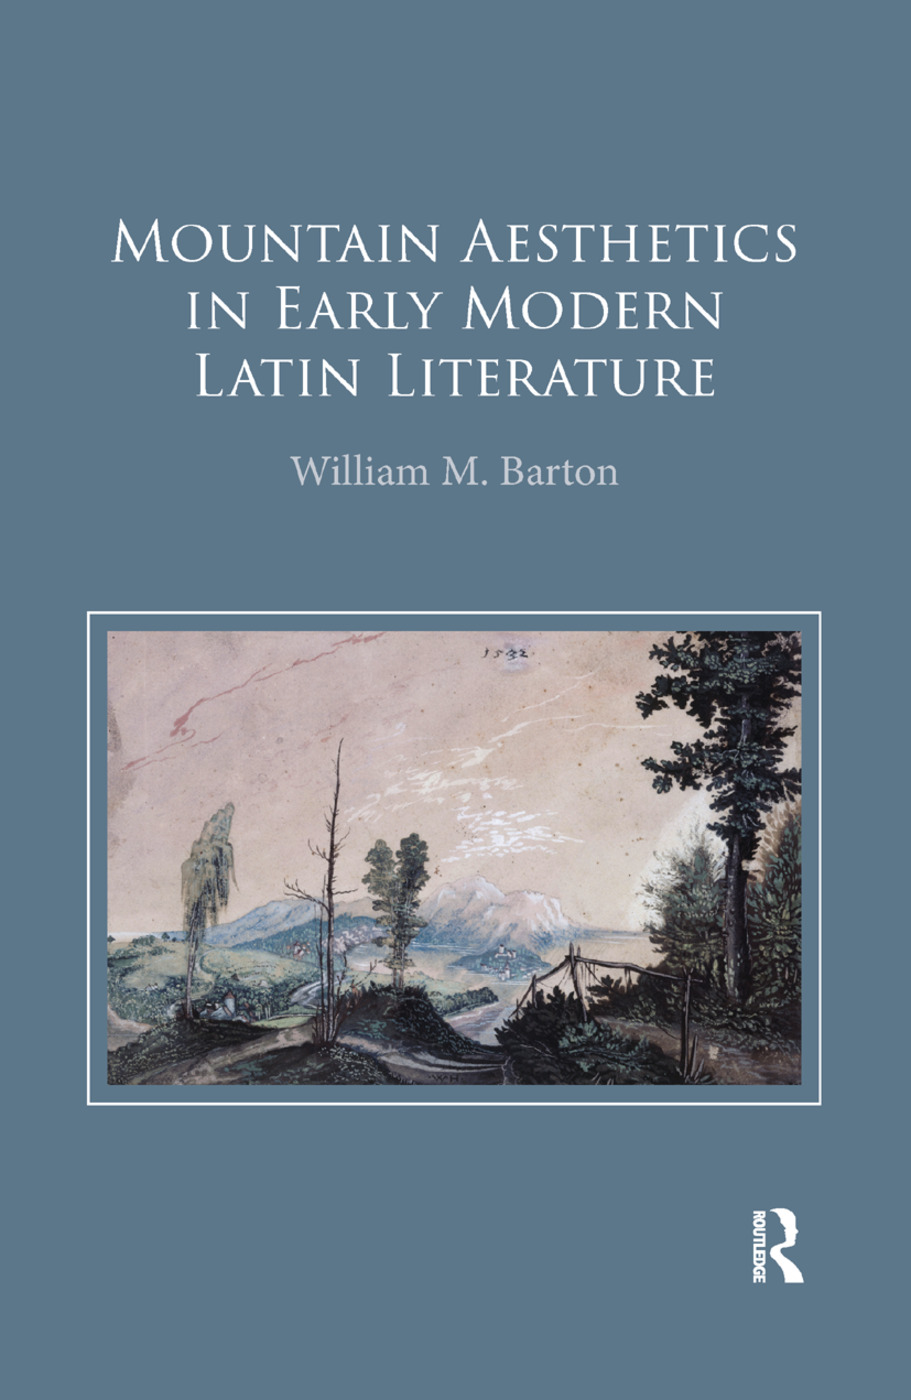 Mountain Aesthetics in Early Modern Latin Literature book cover